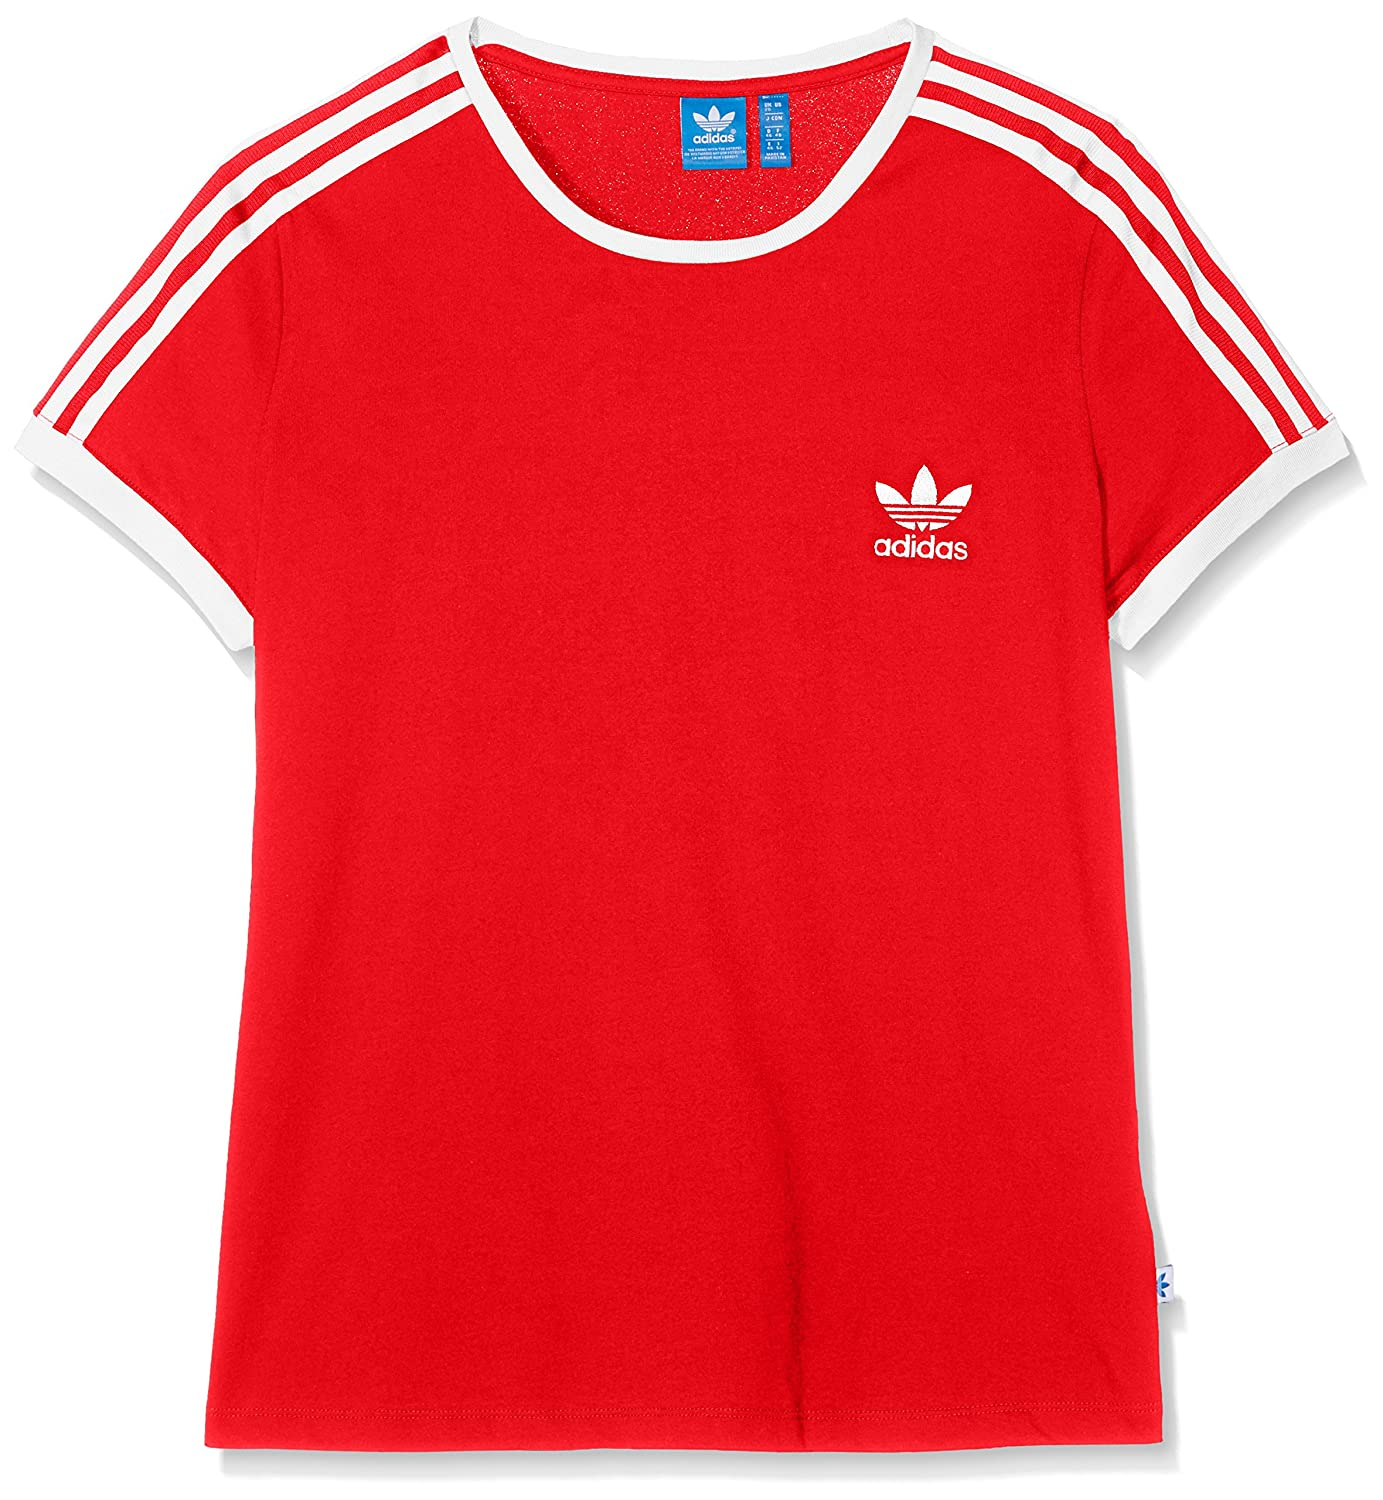 adidas Originals T Shirt 2017